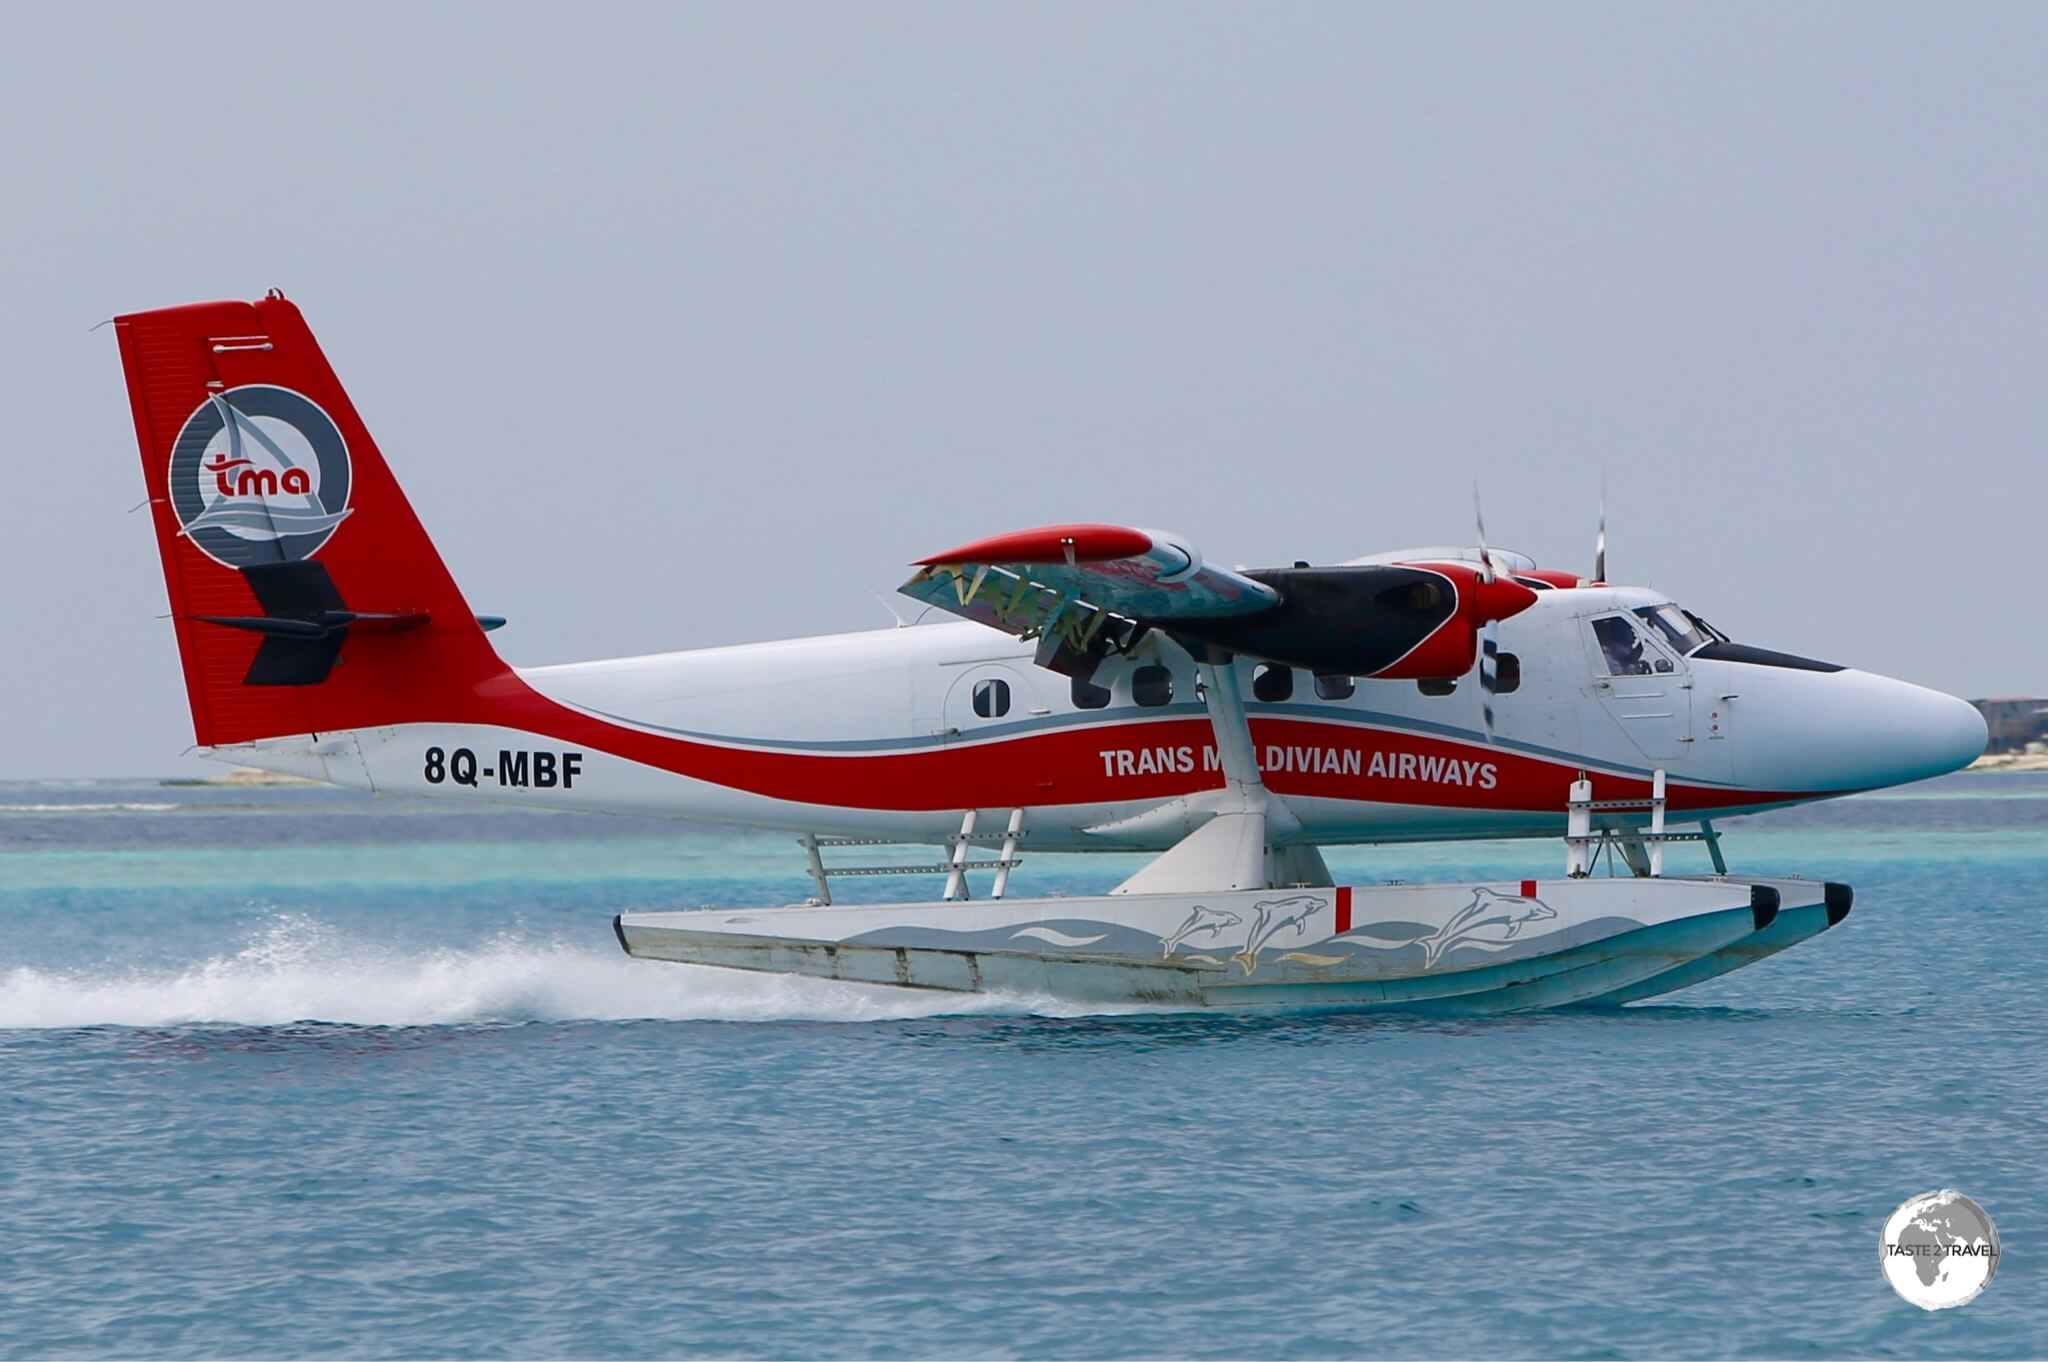 TMA operate the largest fleet of seaplanes in the world.